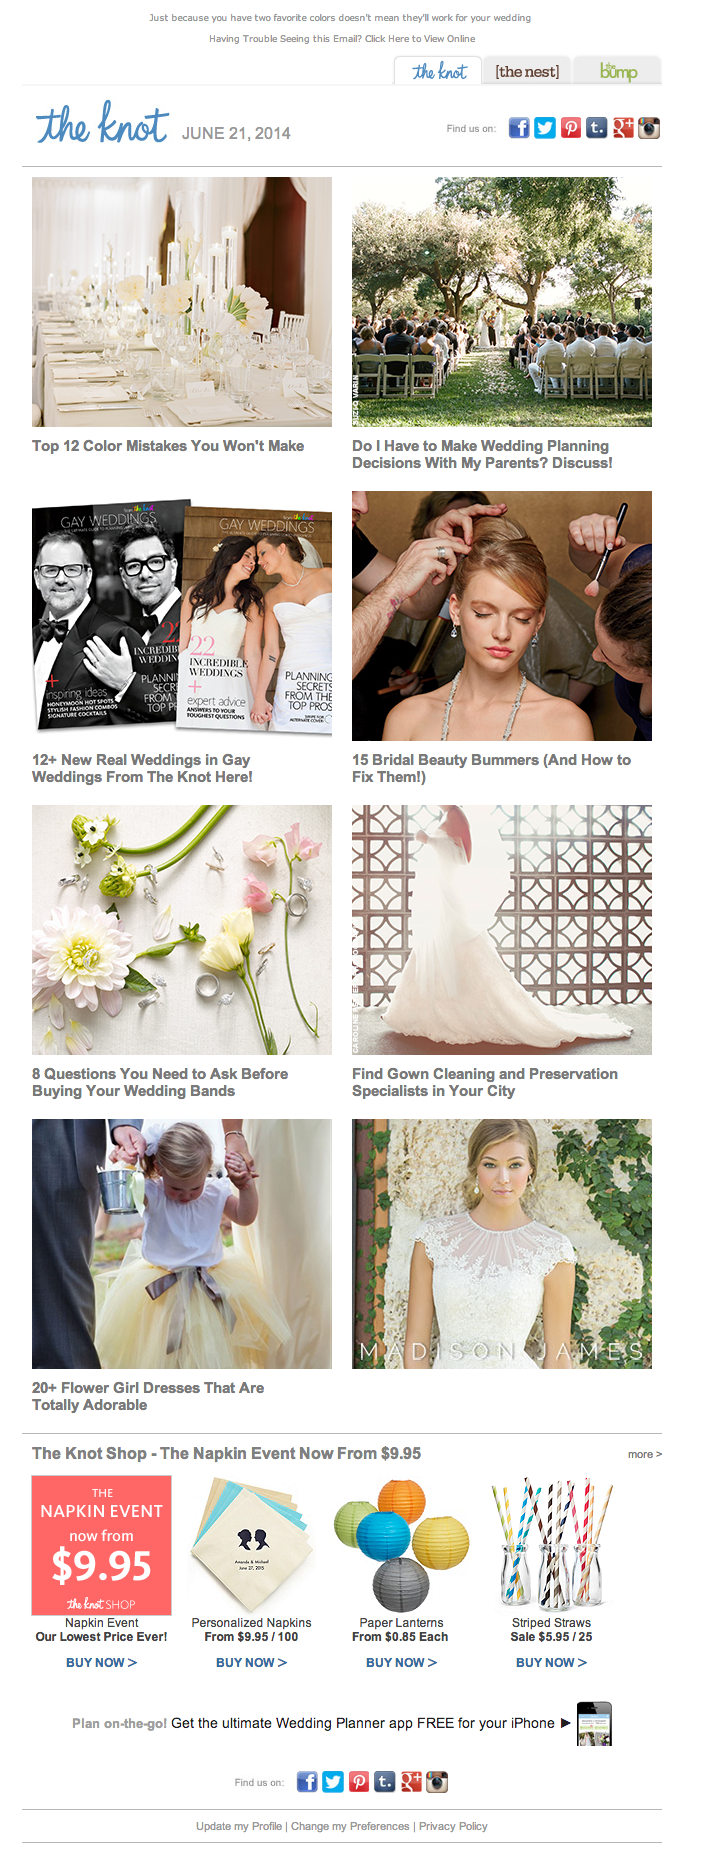 The Knot email 2014 Wedding decision, Wedding, Bridal beauty